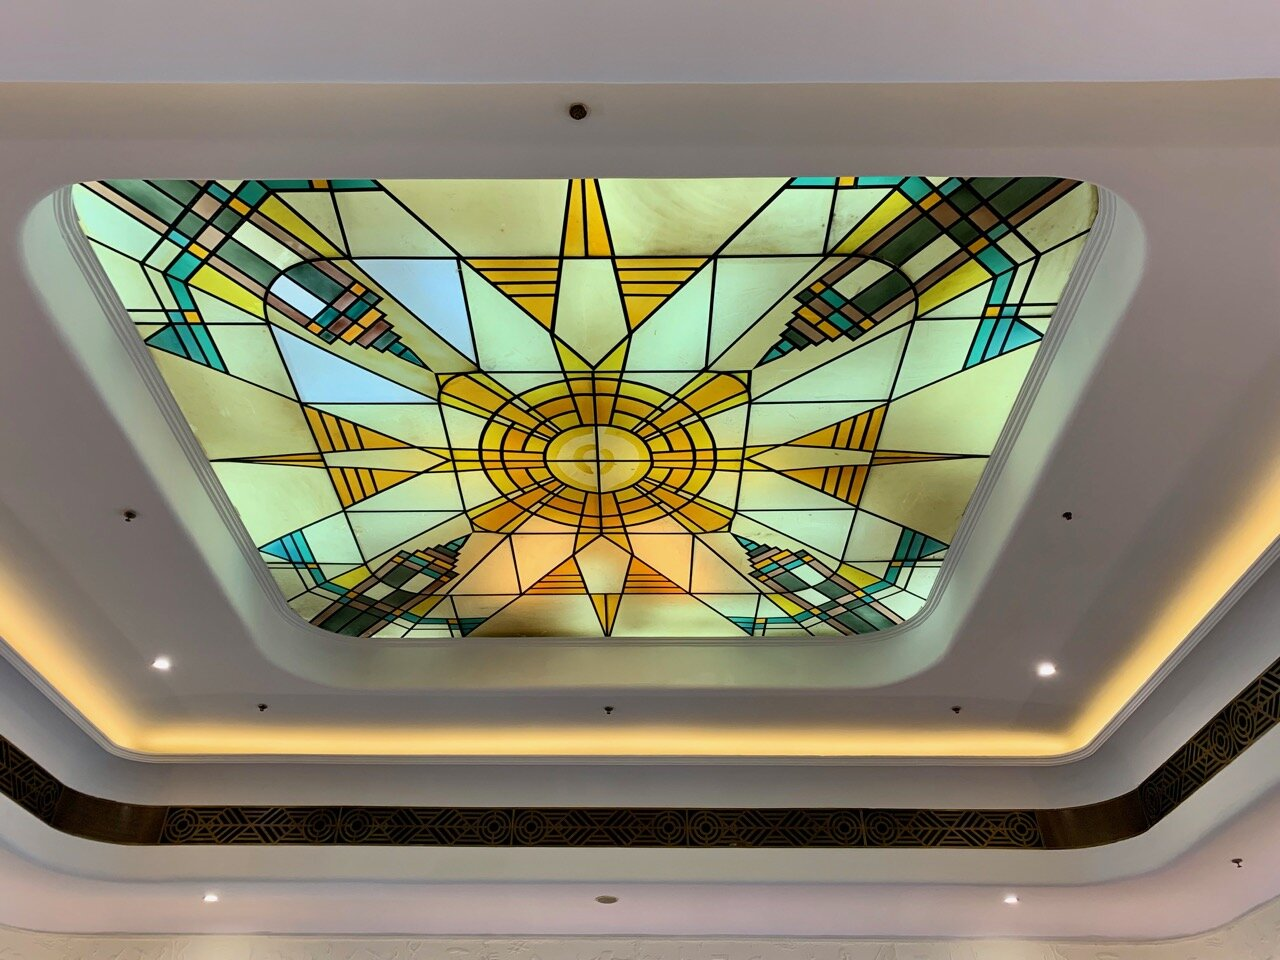 The skylight feature on the ceiling of the Park Hotel ballroom.